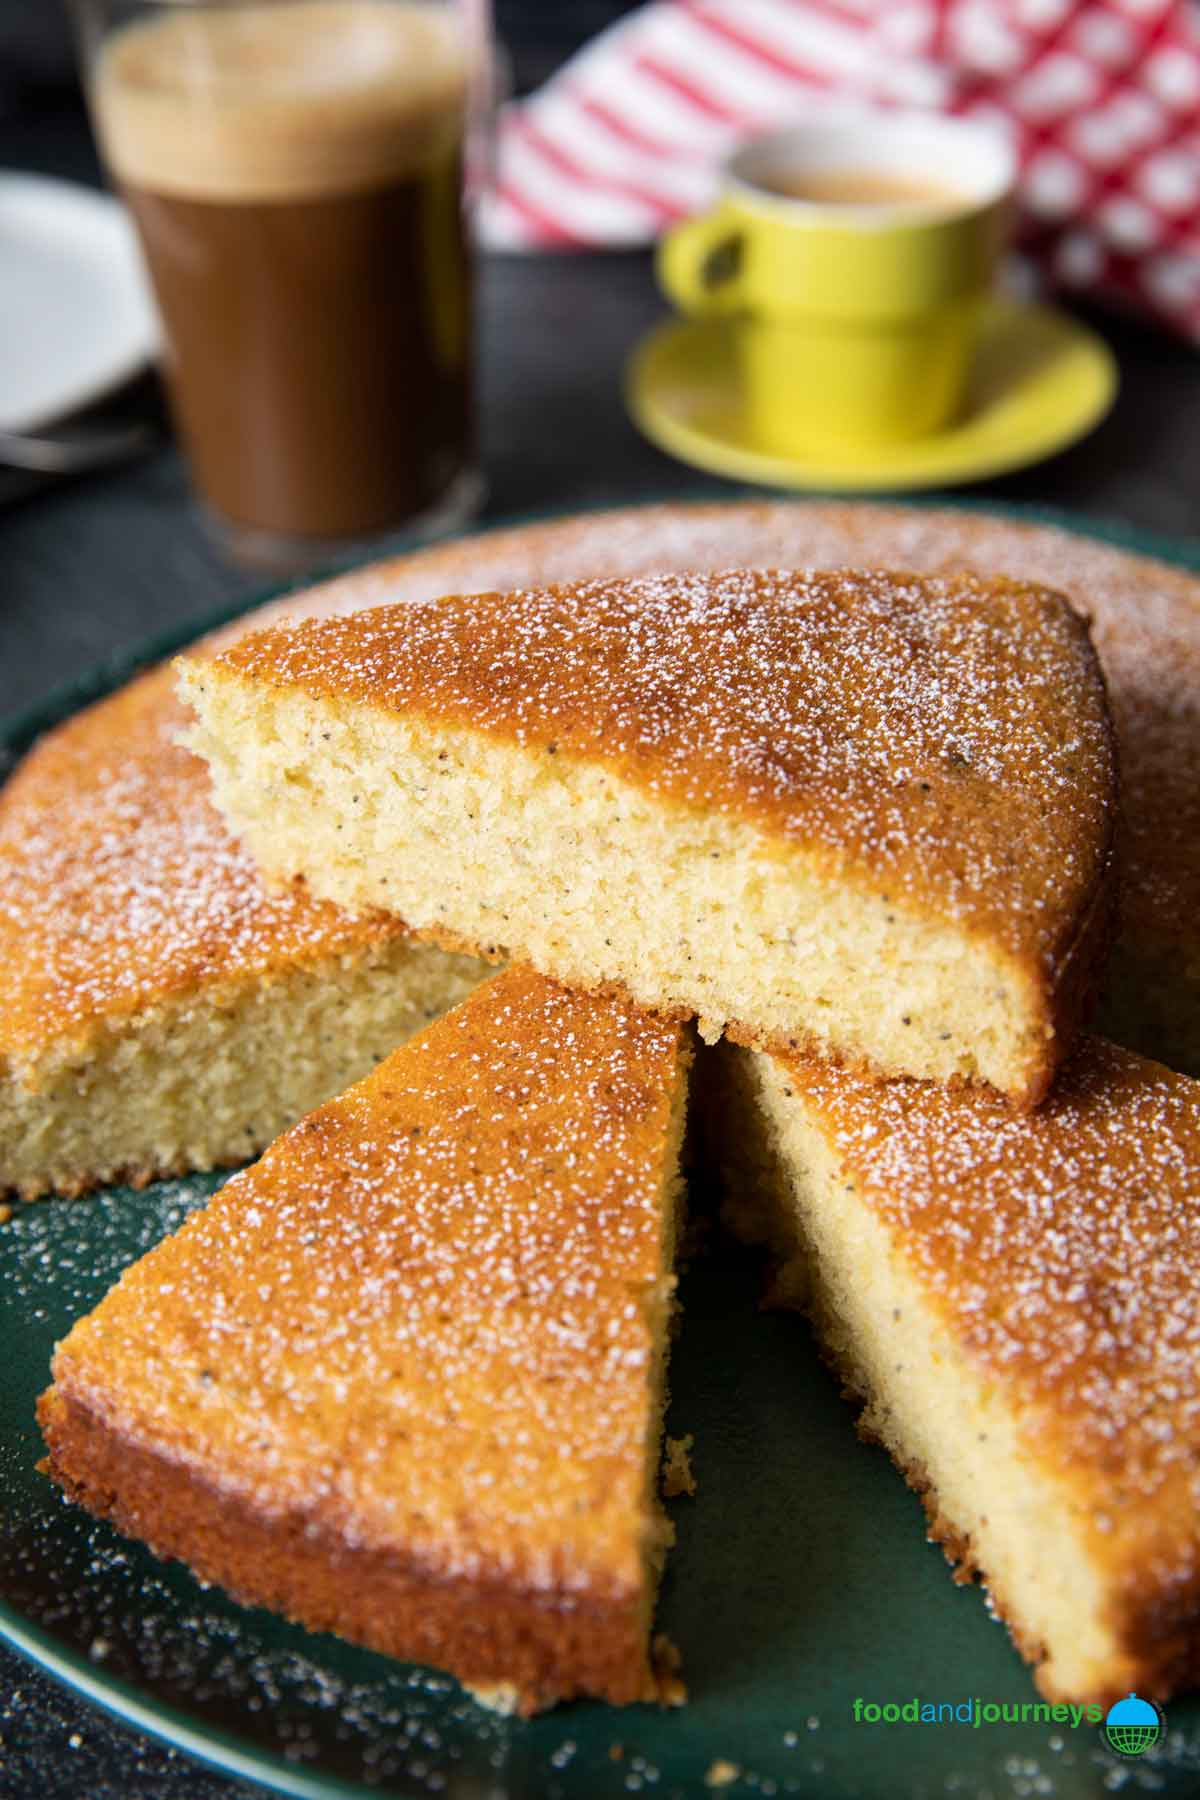 A closer shot of a slice of cardamom cake, showing the bits of ground cardamom in the cake, and its buttery texture.